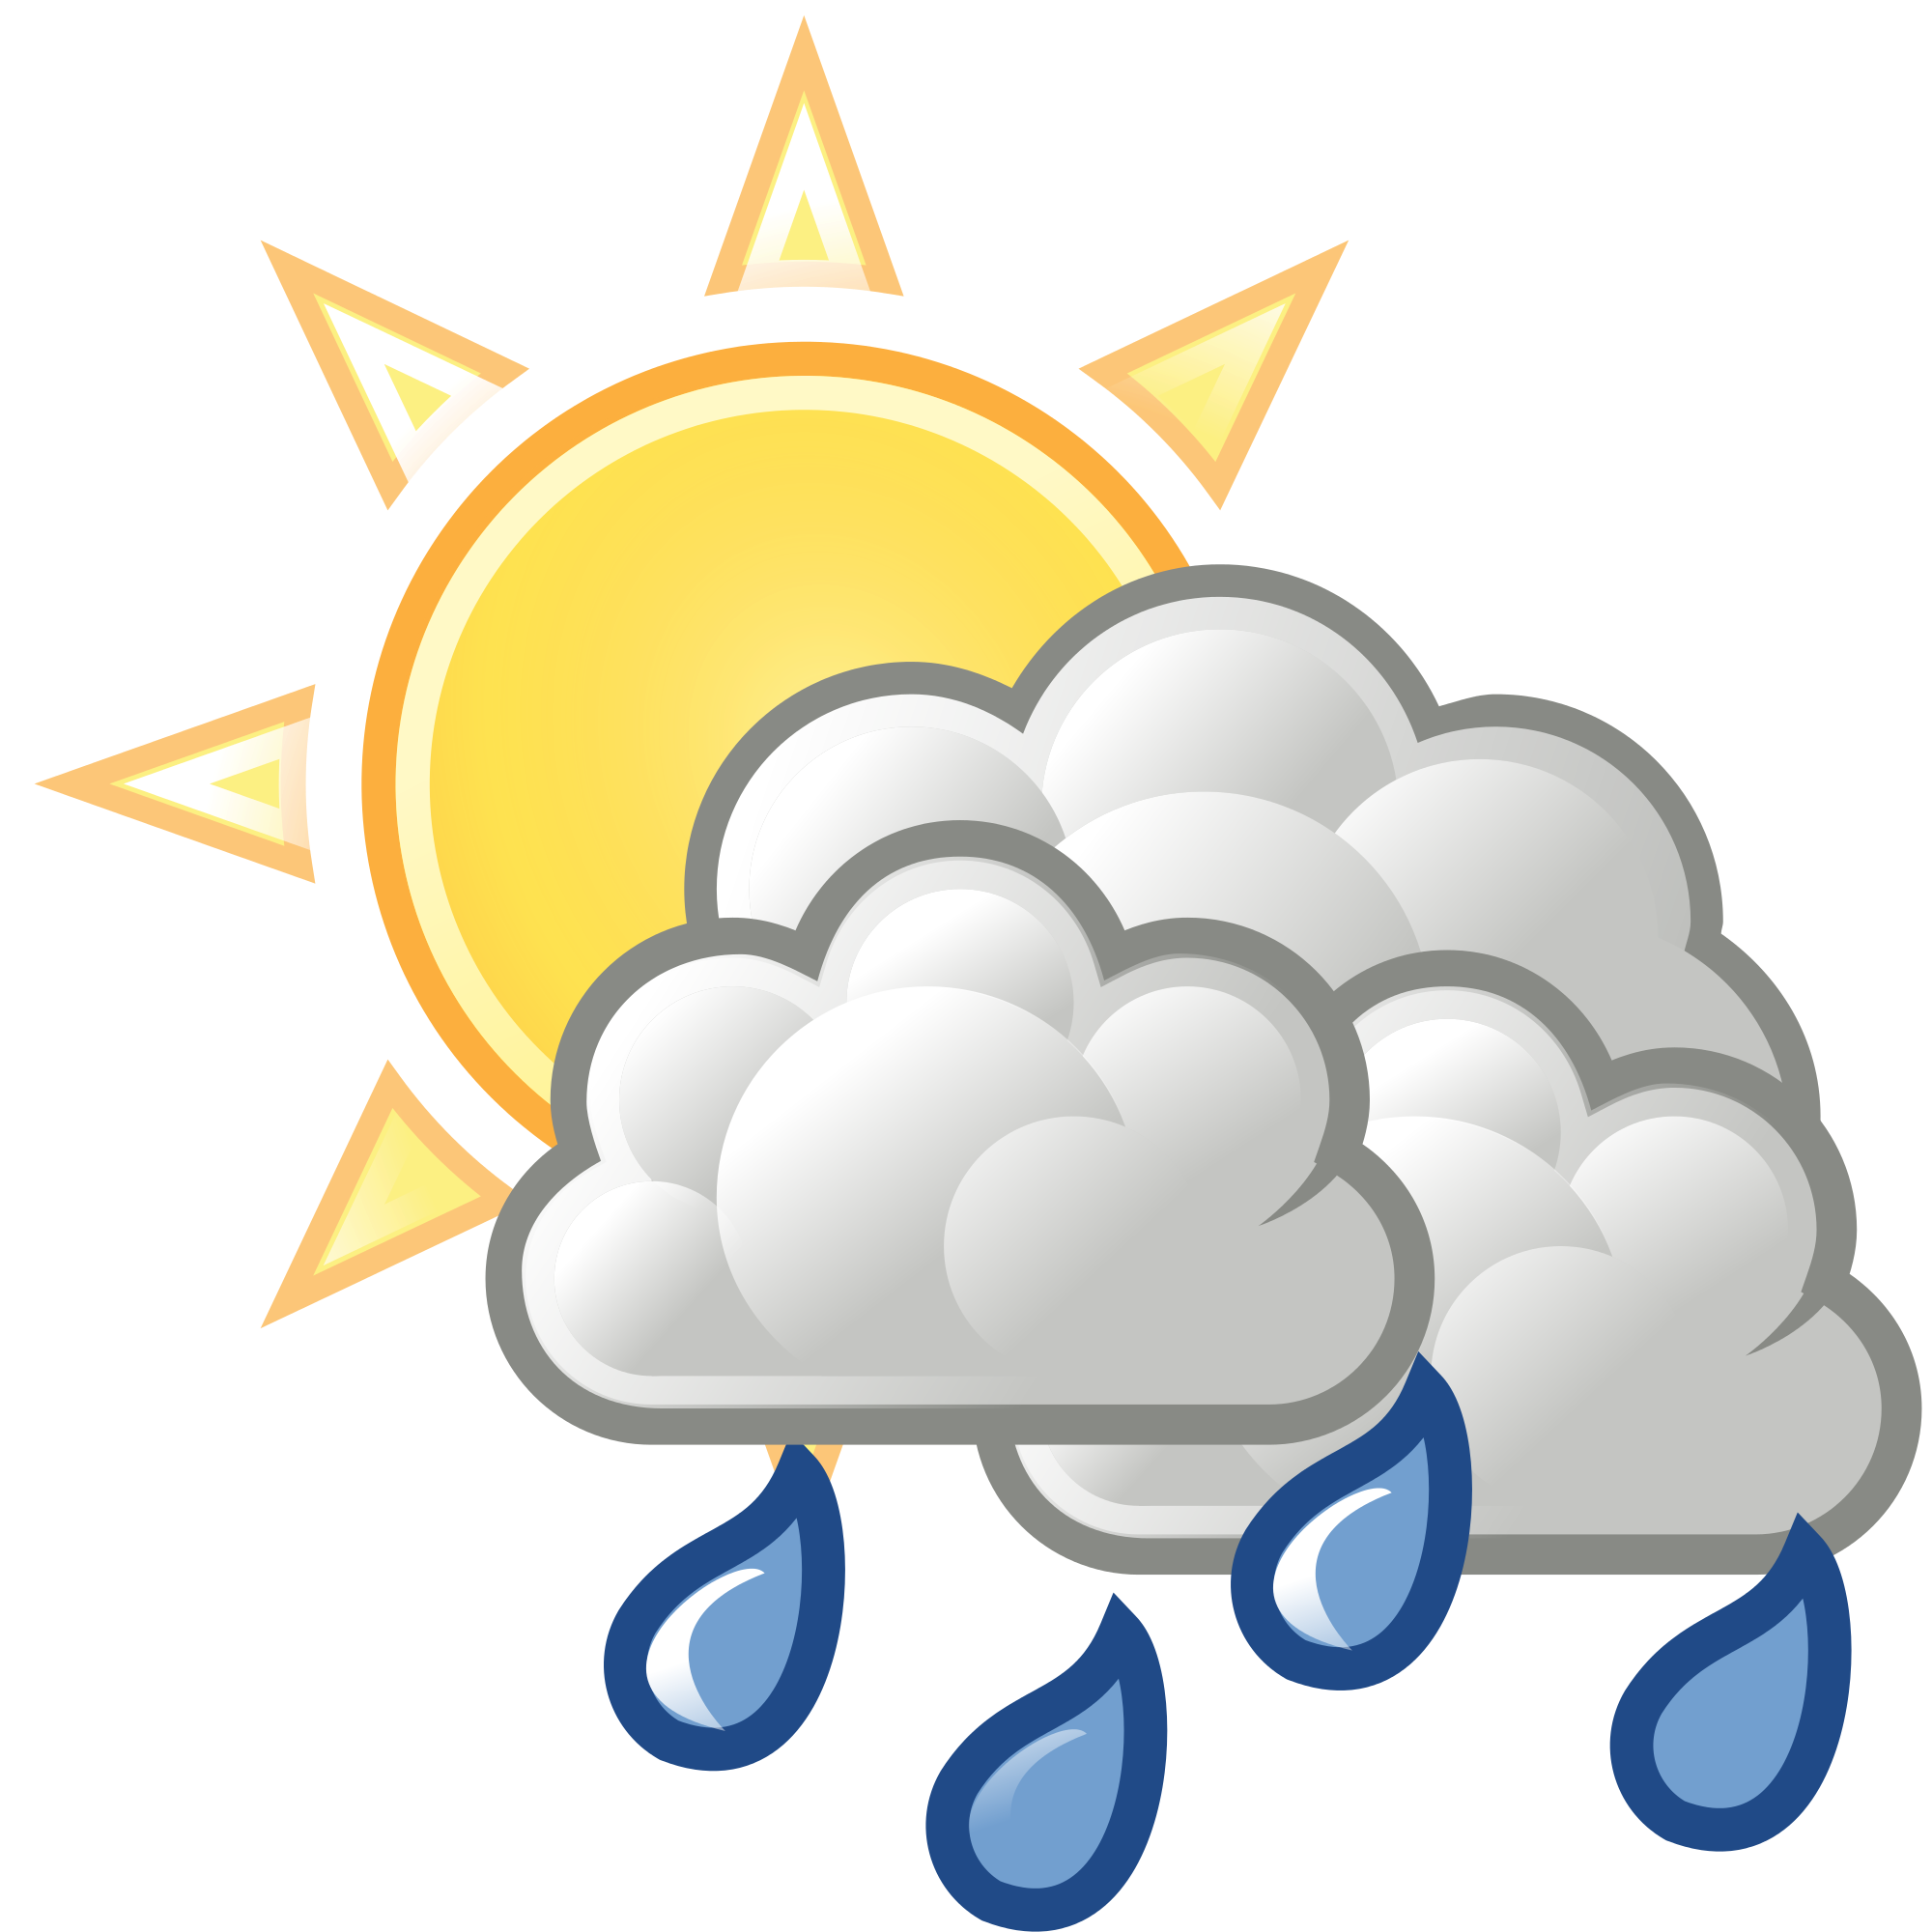 Rain and sun clipart